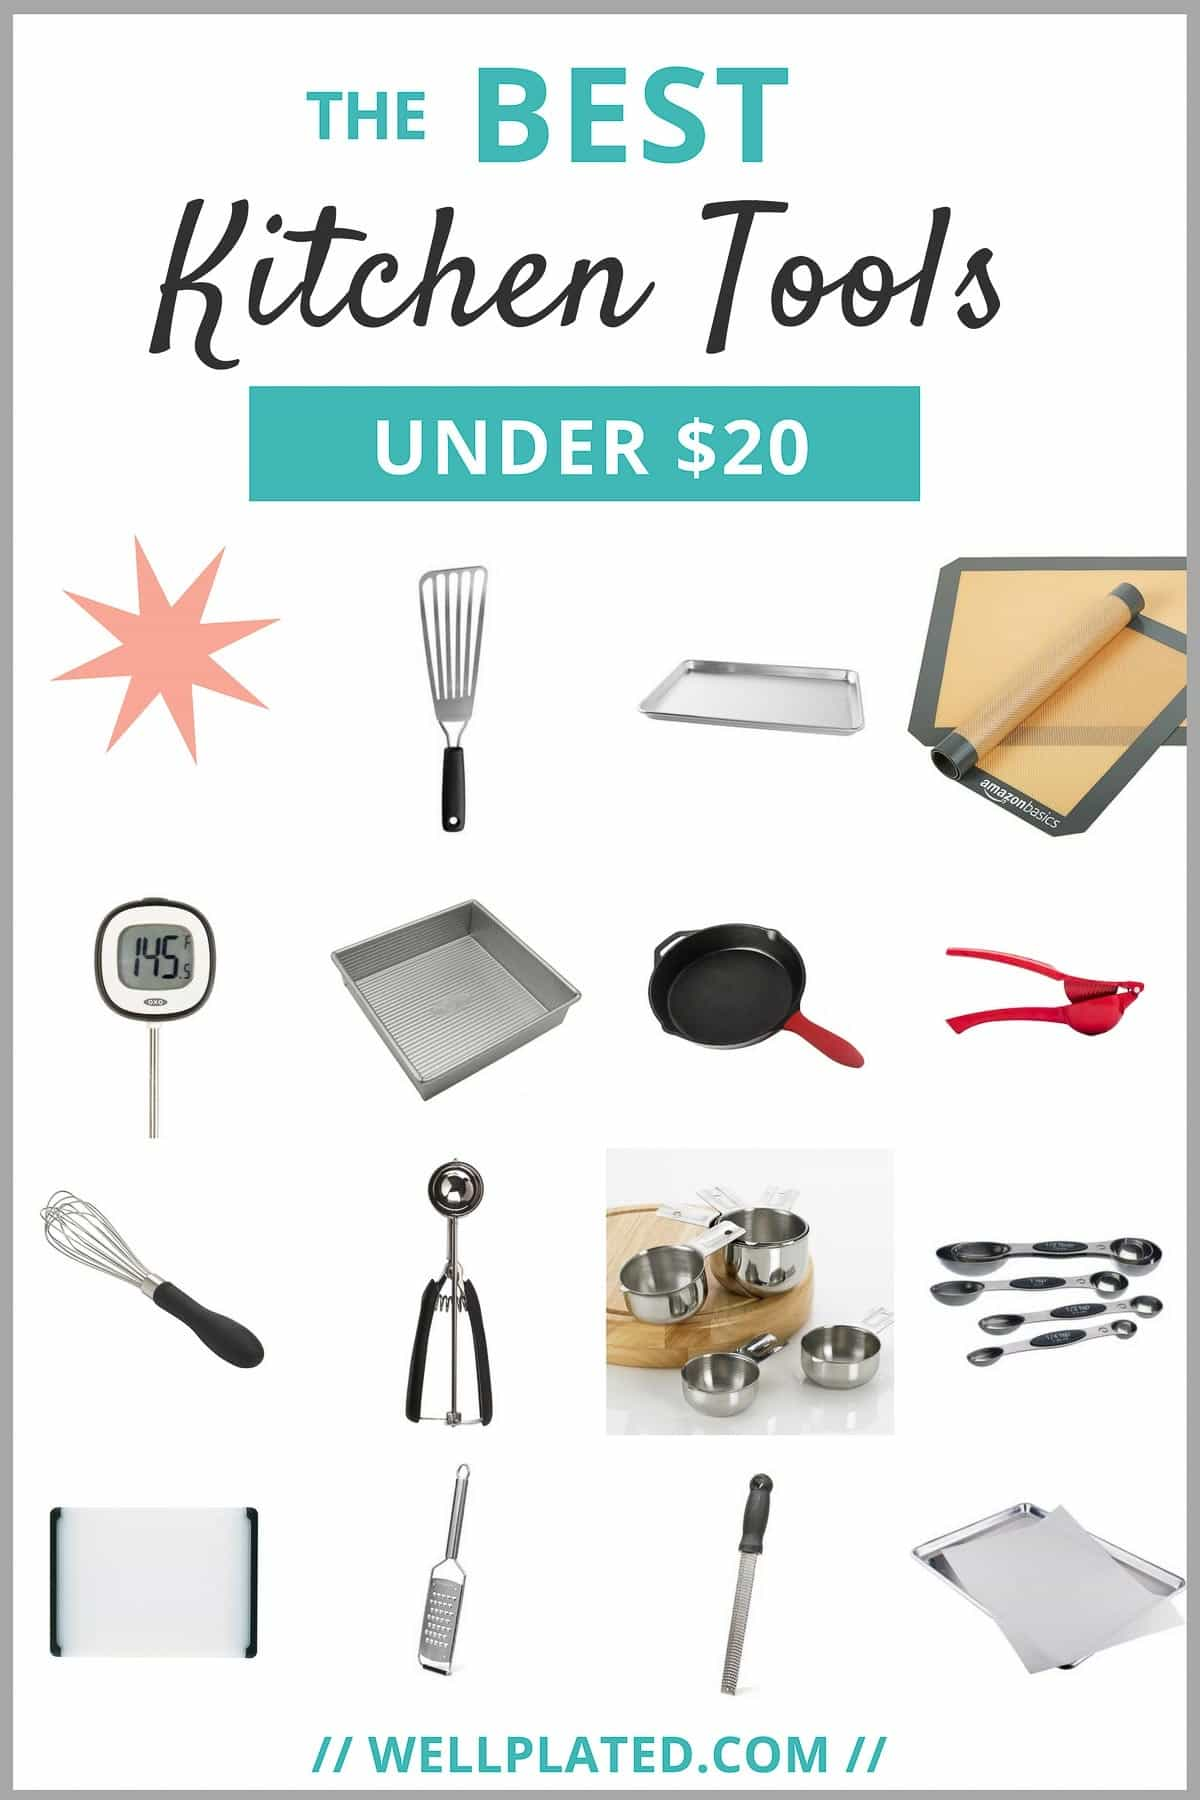 The BEST low cost kitchen tools. Less than $20! A must have list for home cooks and anyone looking to stock their kitchen on a budget. From wellplated.com | @wellplated